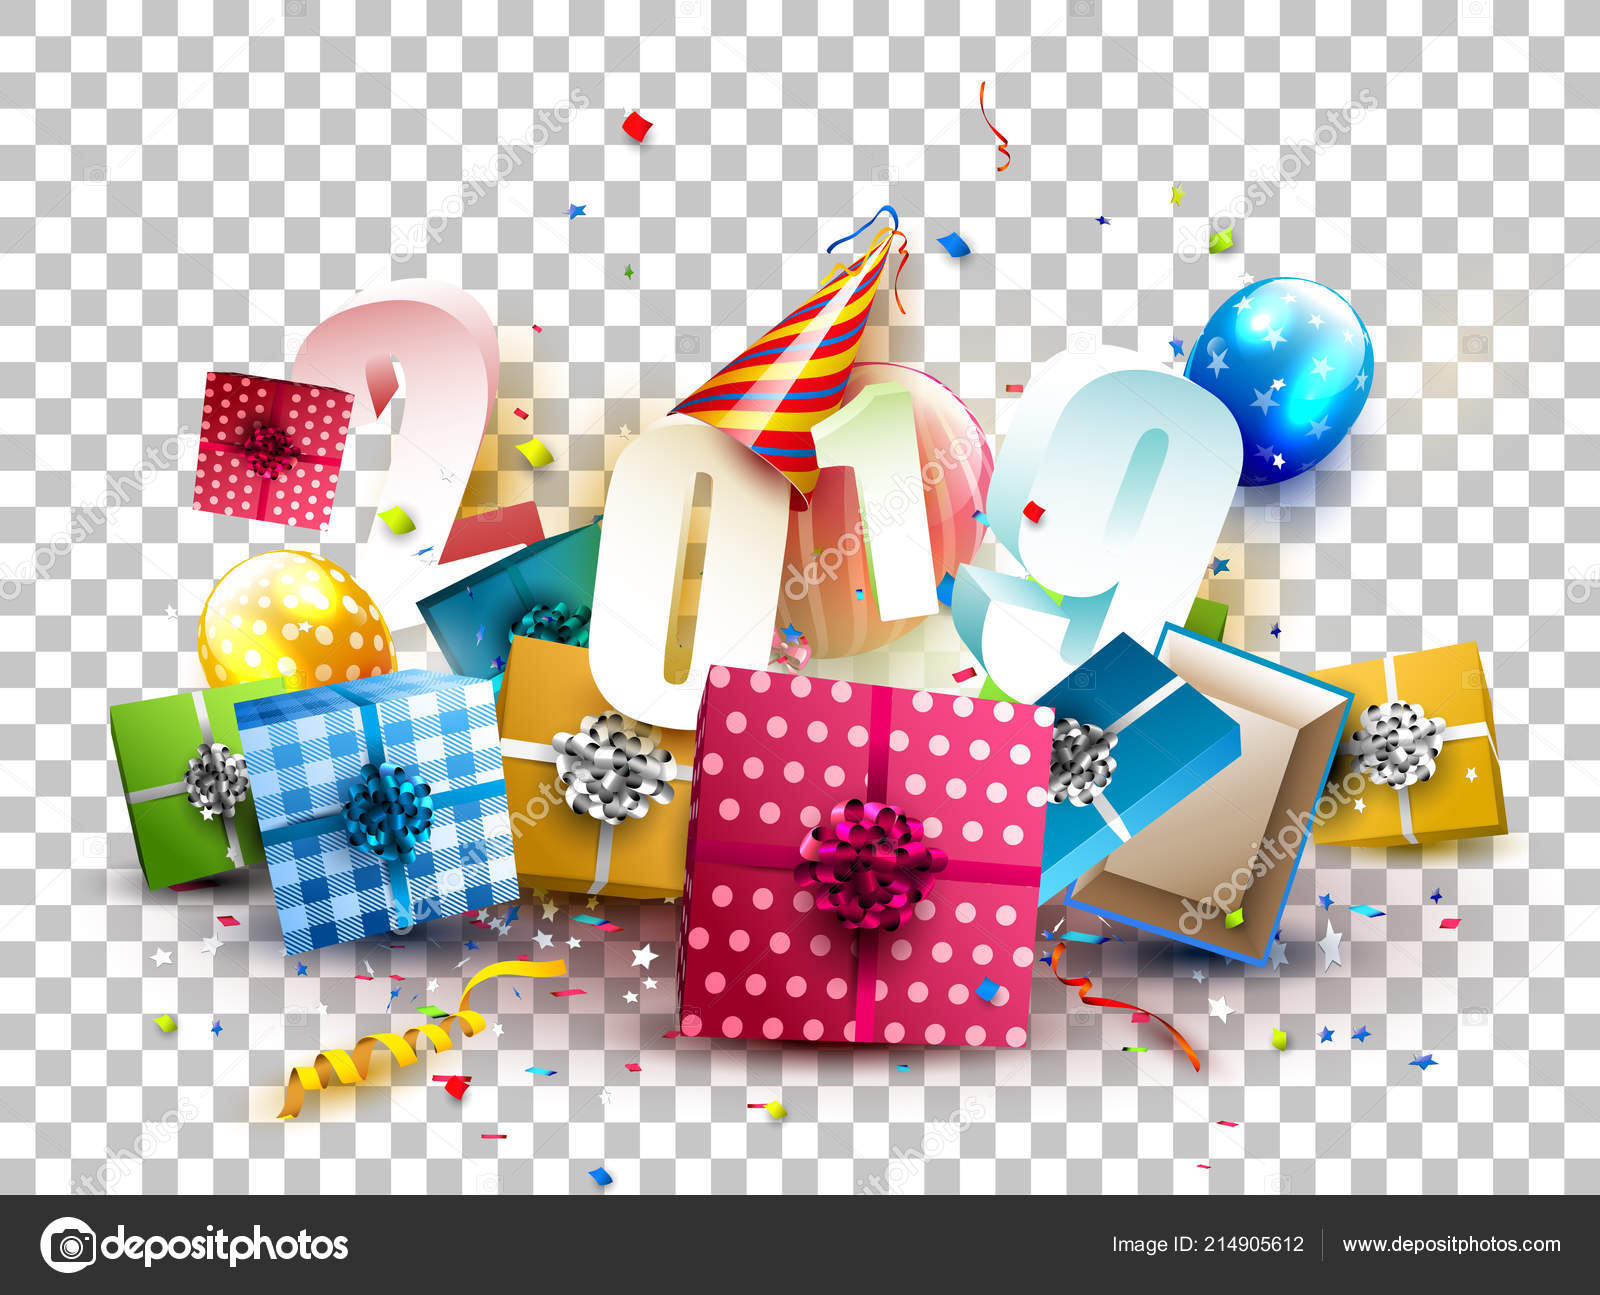 happy new year 2019 colorful gift boxes balloons and party hat on transparent background vector by kaktus2536